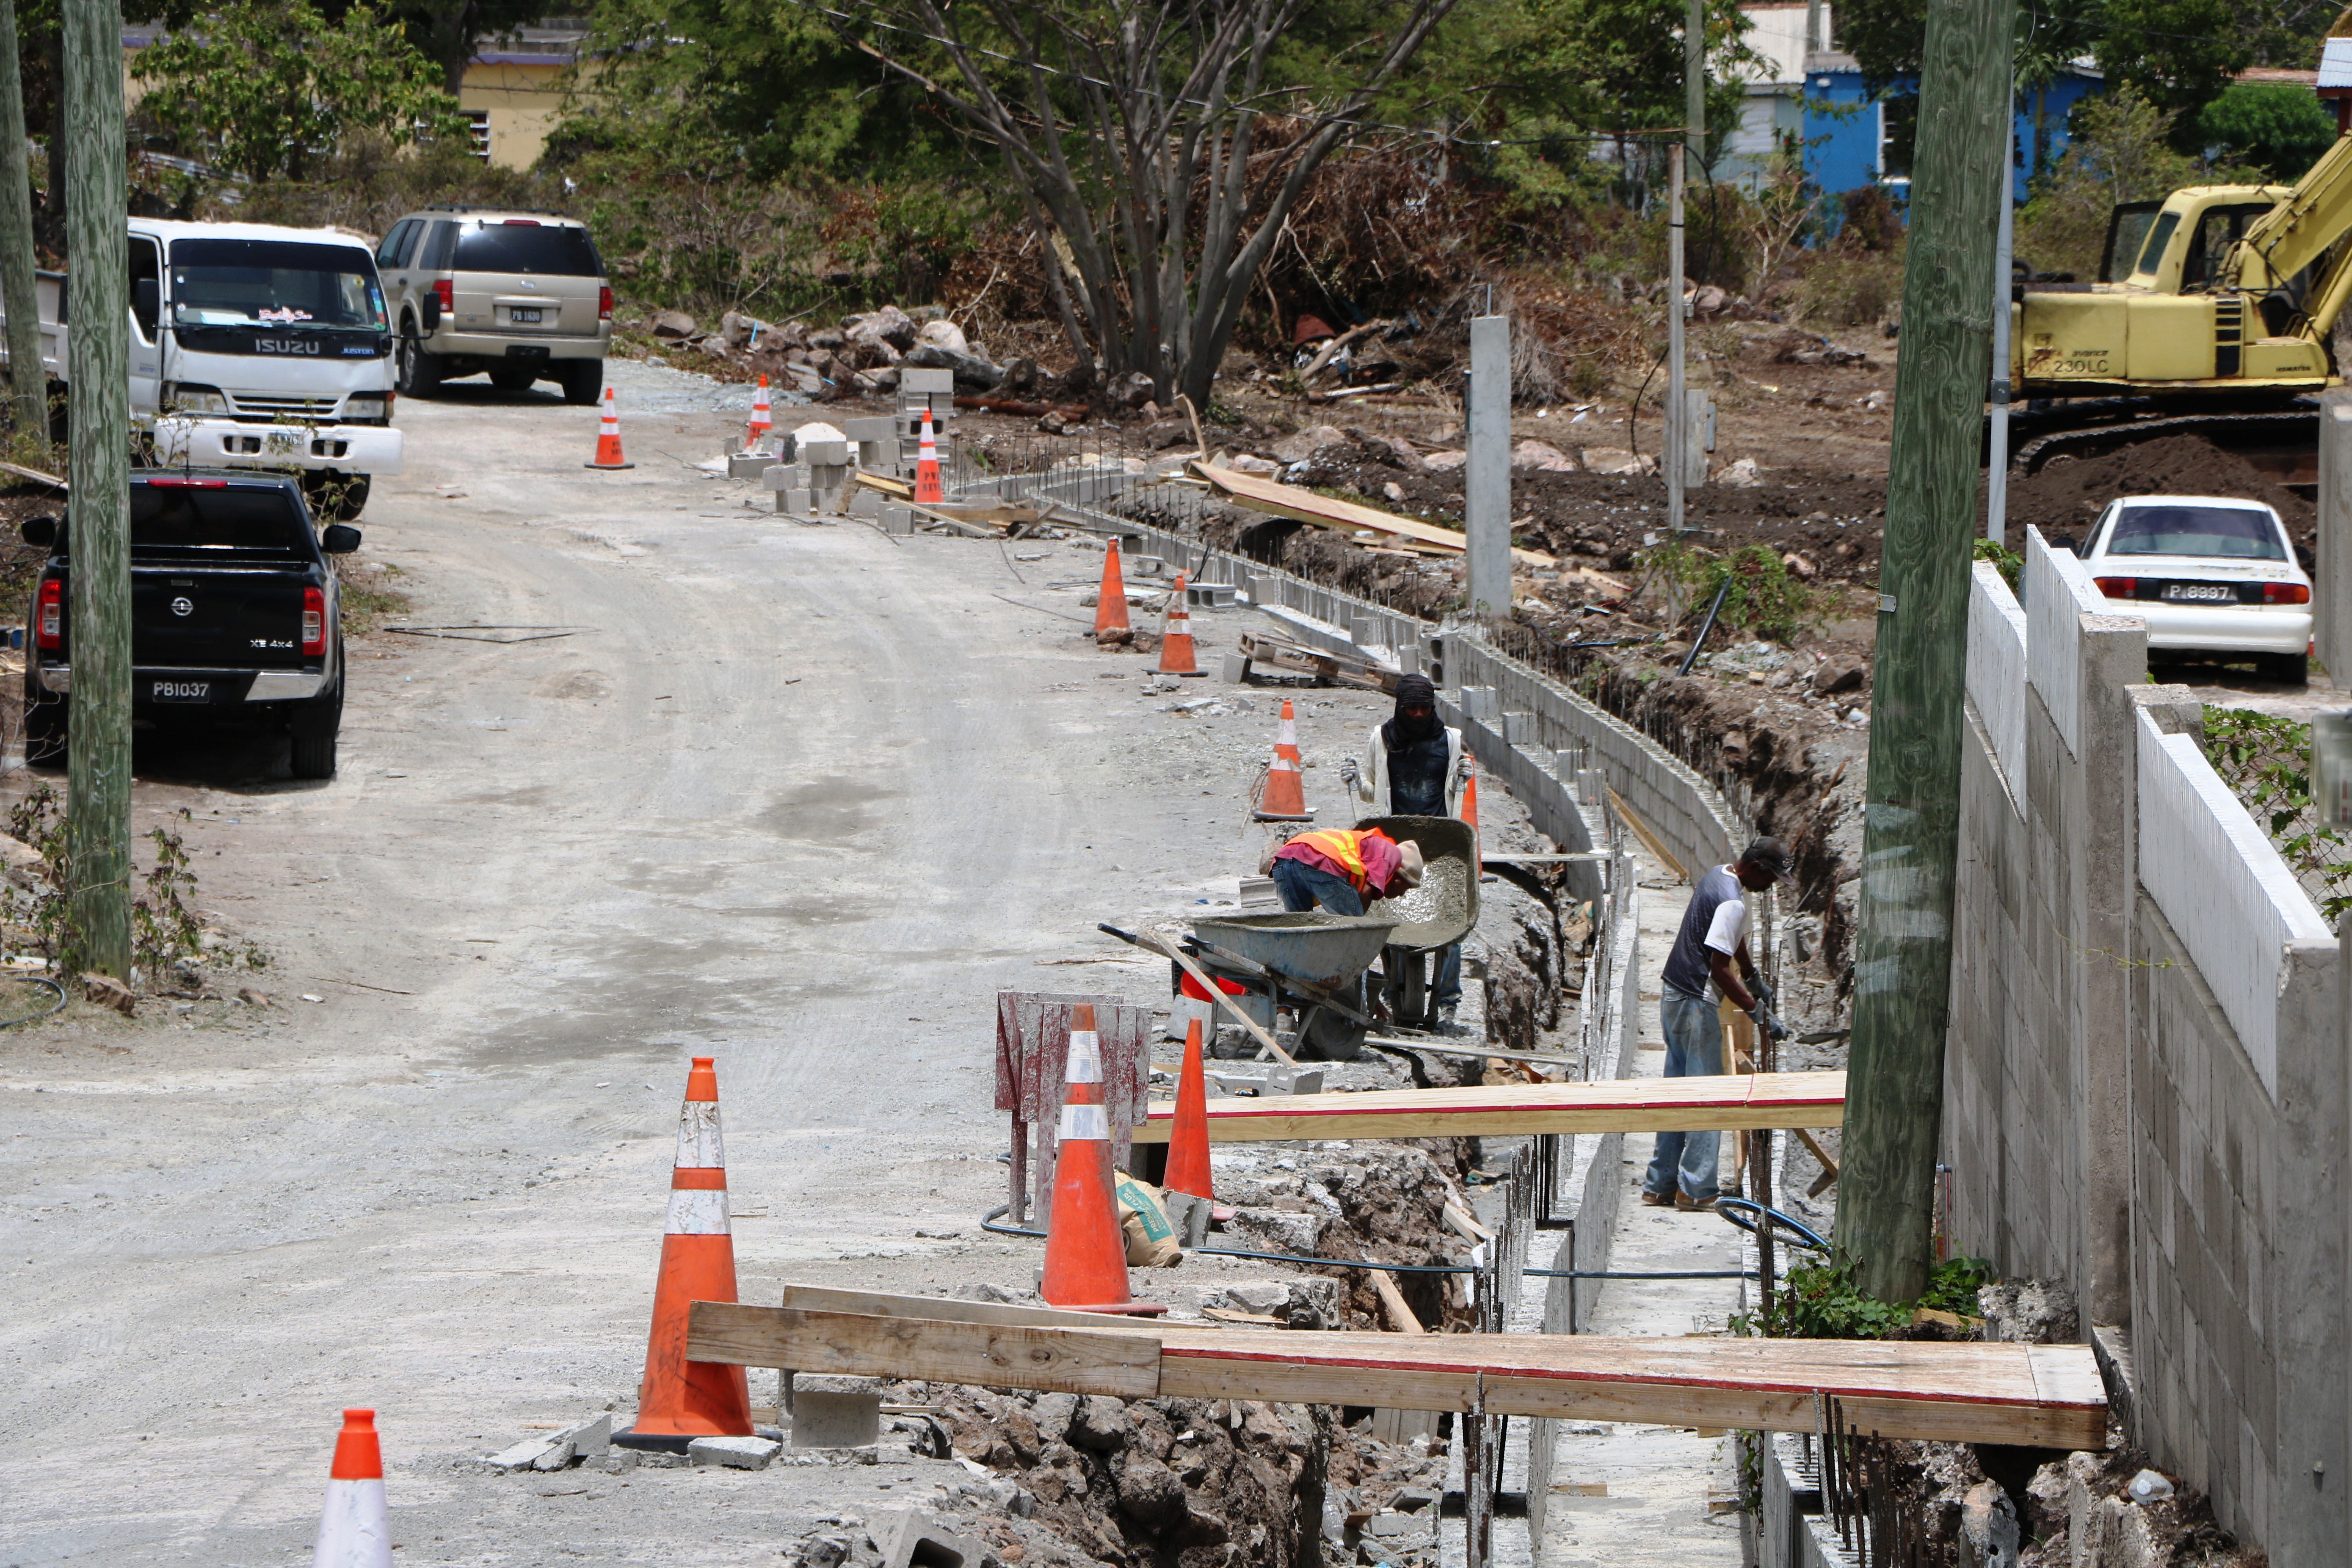 Workers from the Public Works Department working on the construction of U-drains in the Craddock Road Rehabilitation Project on July 23, 2019